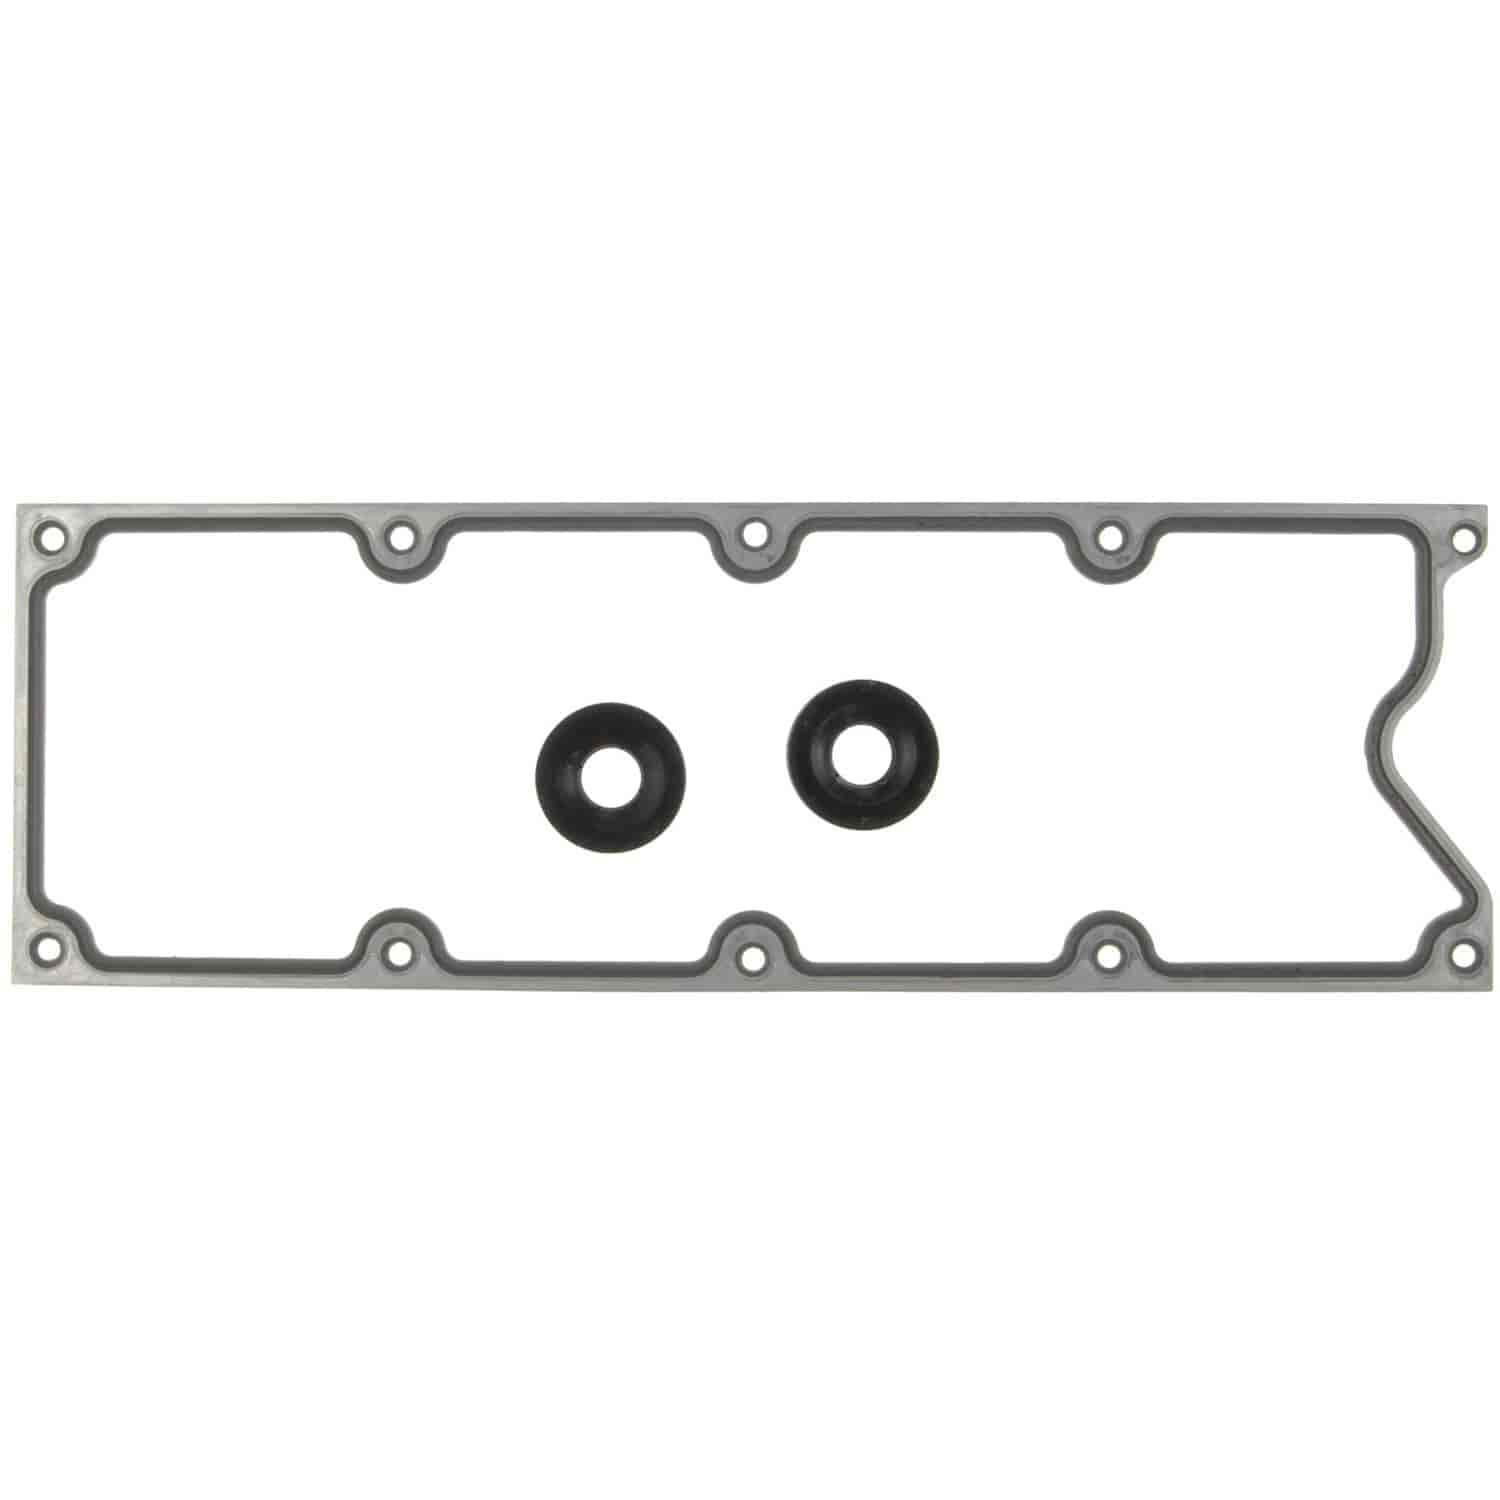 Clevite Mahle Ms Intake Manifold Valley Pan Gasket